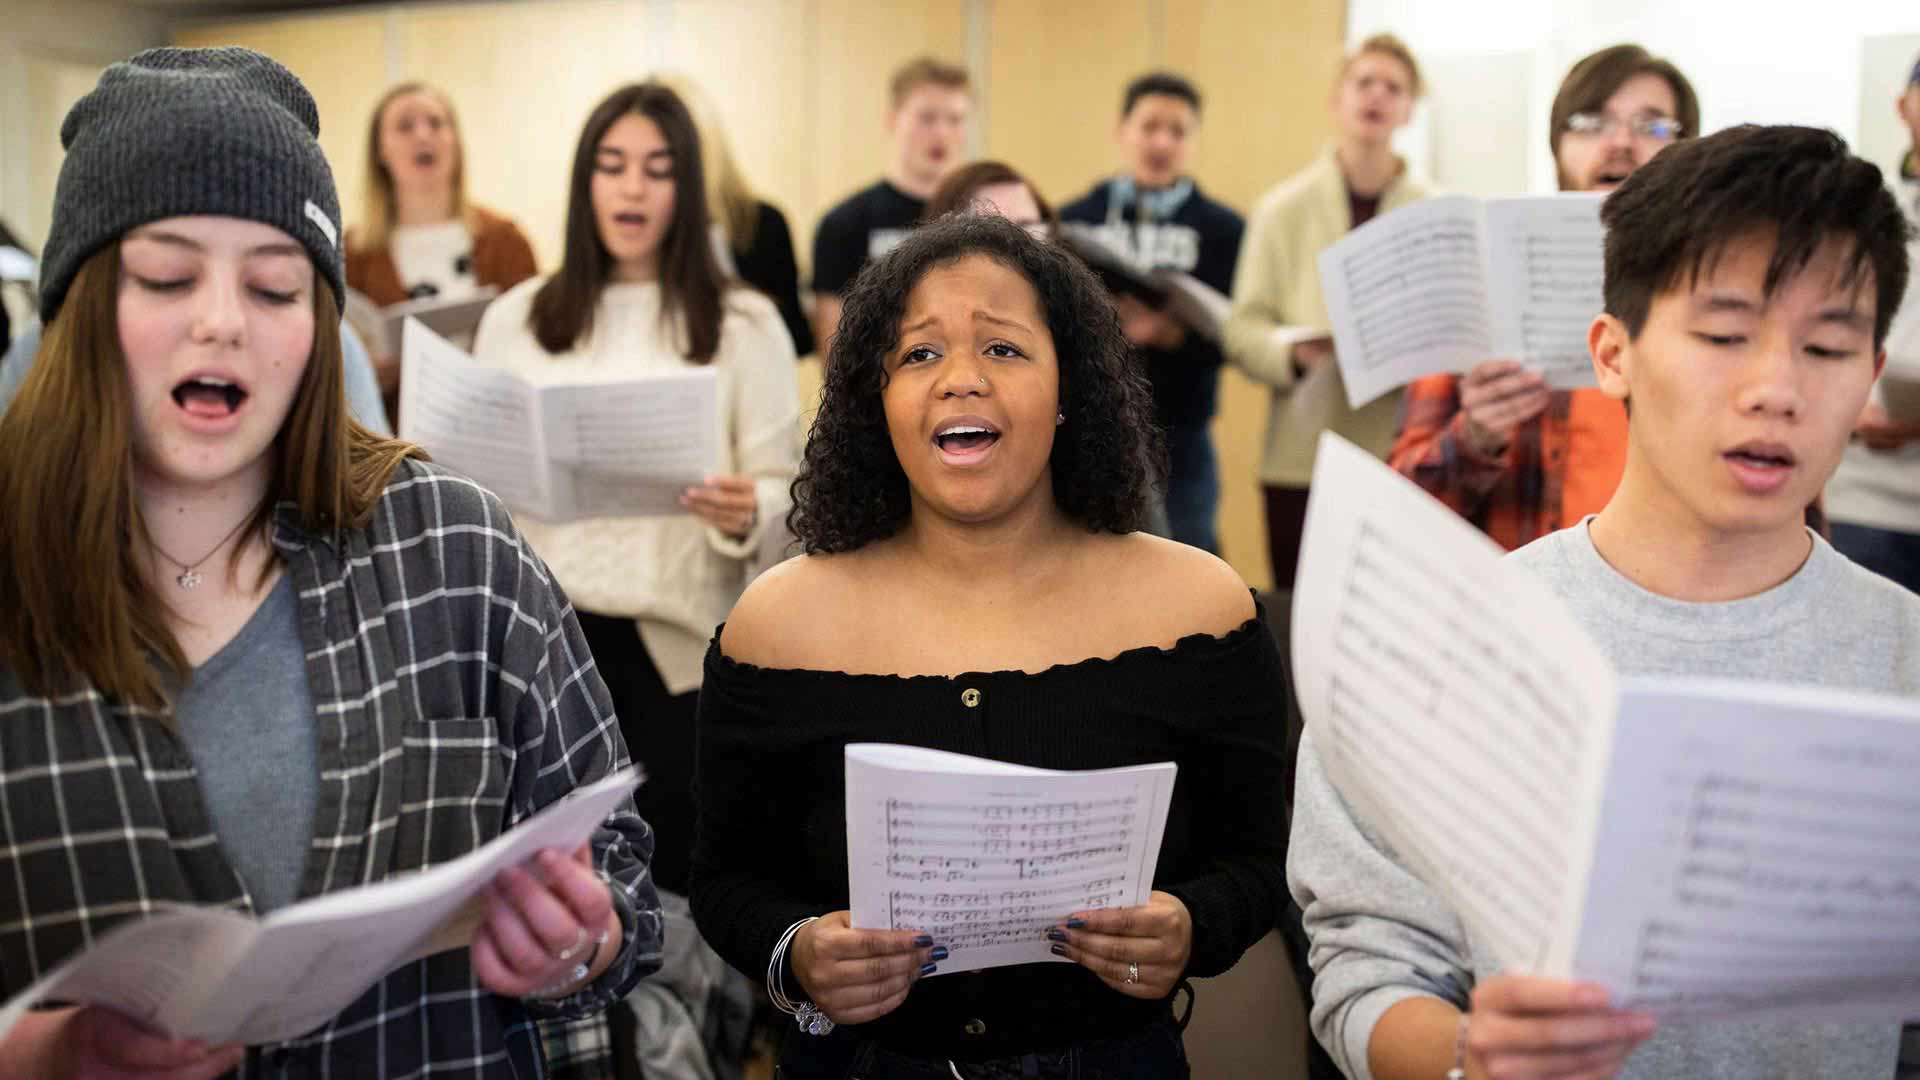 St. Thomas' Concert Choir ensemble rehearses with sheet music in hand.